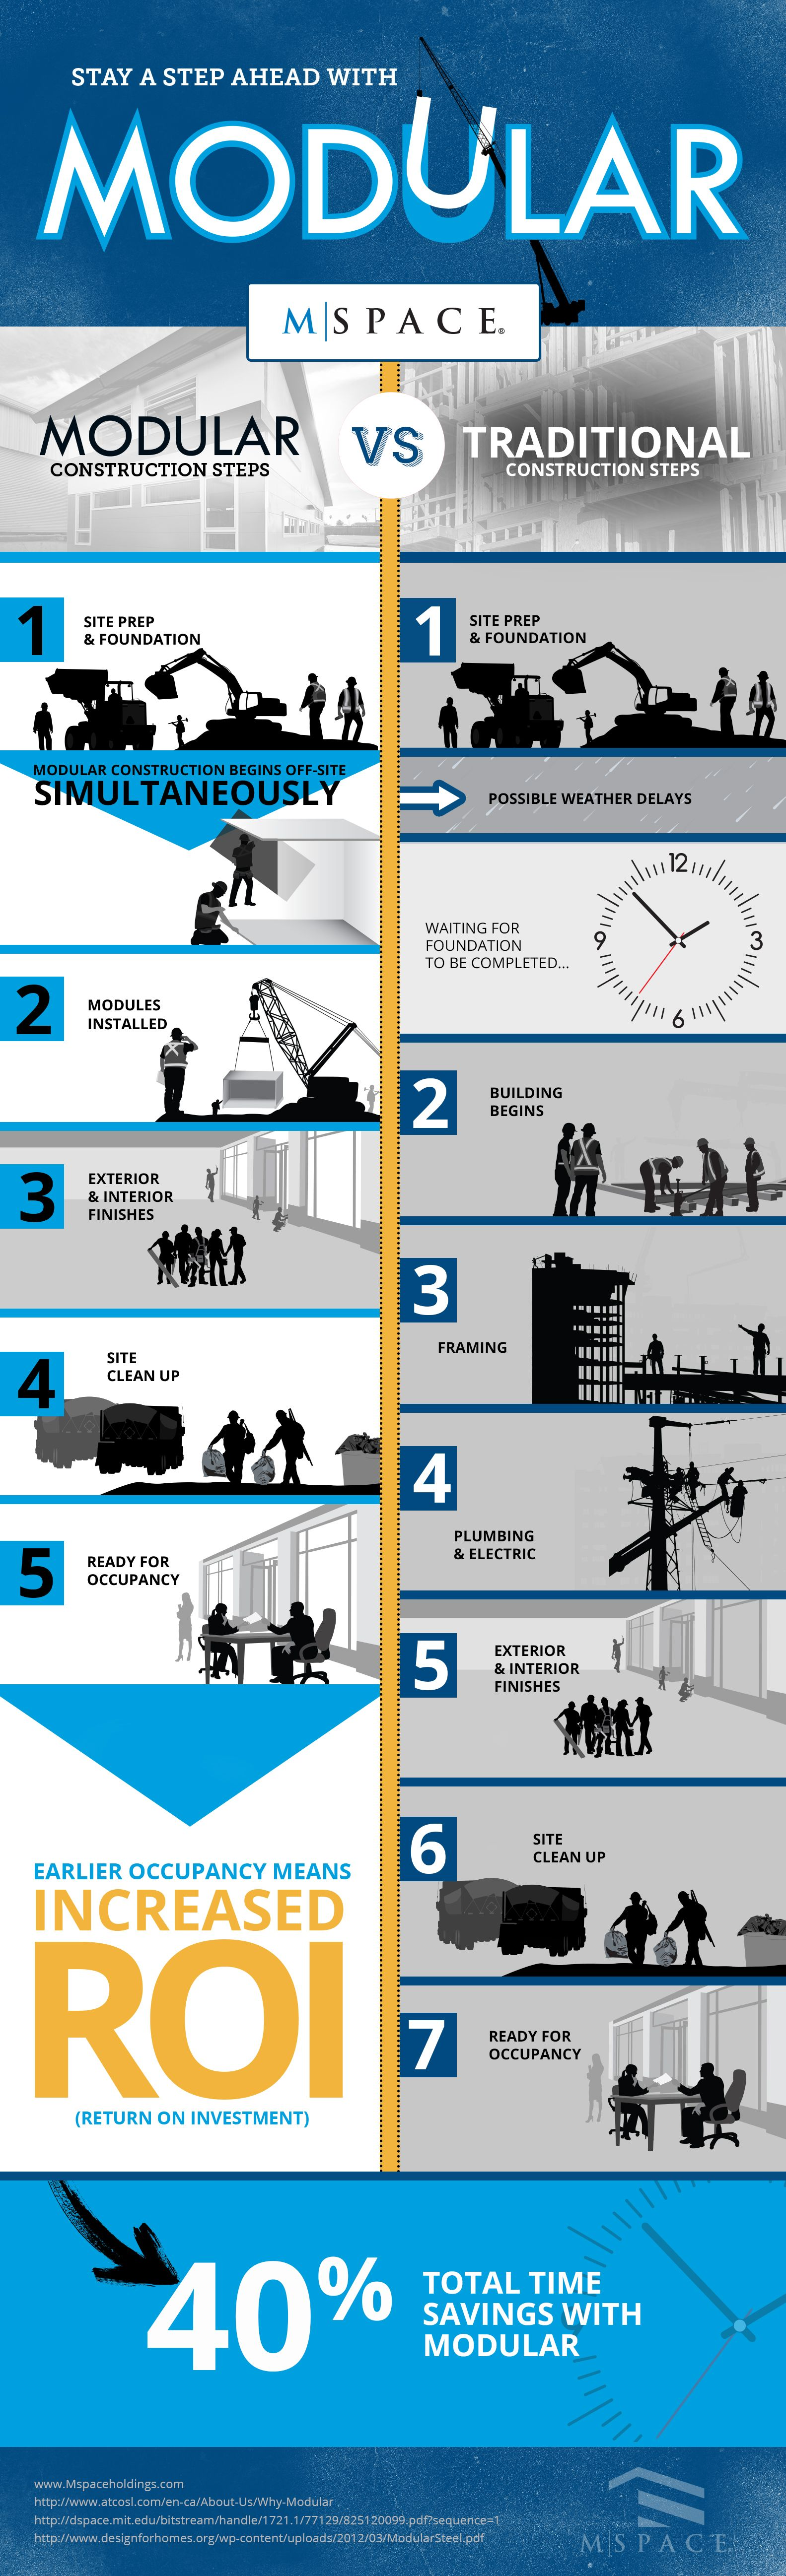 Modular vs. Traditional #Infographic #modular | Learn More About ...